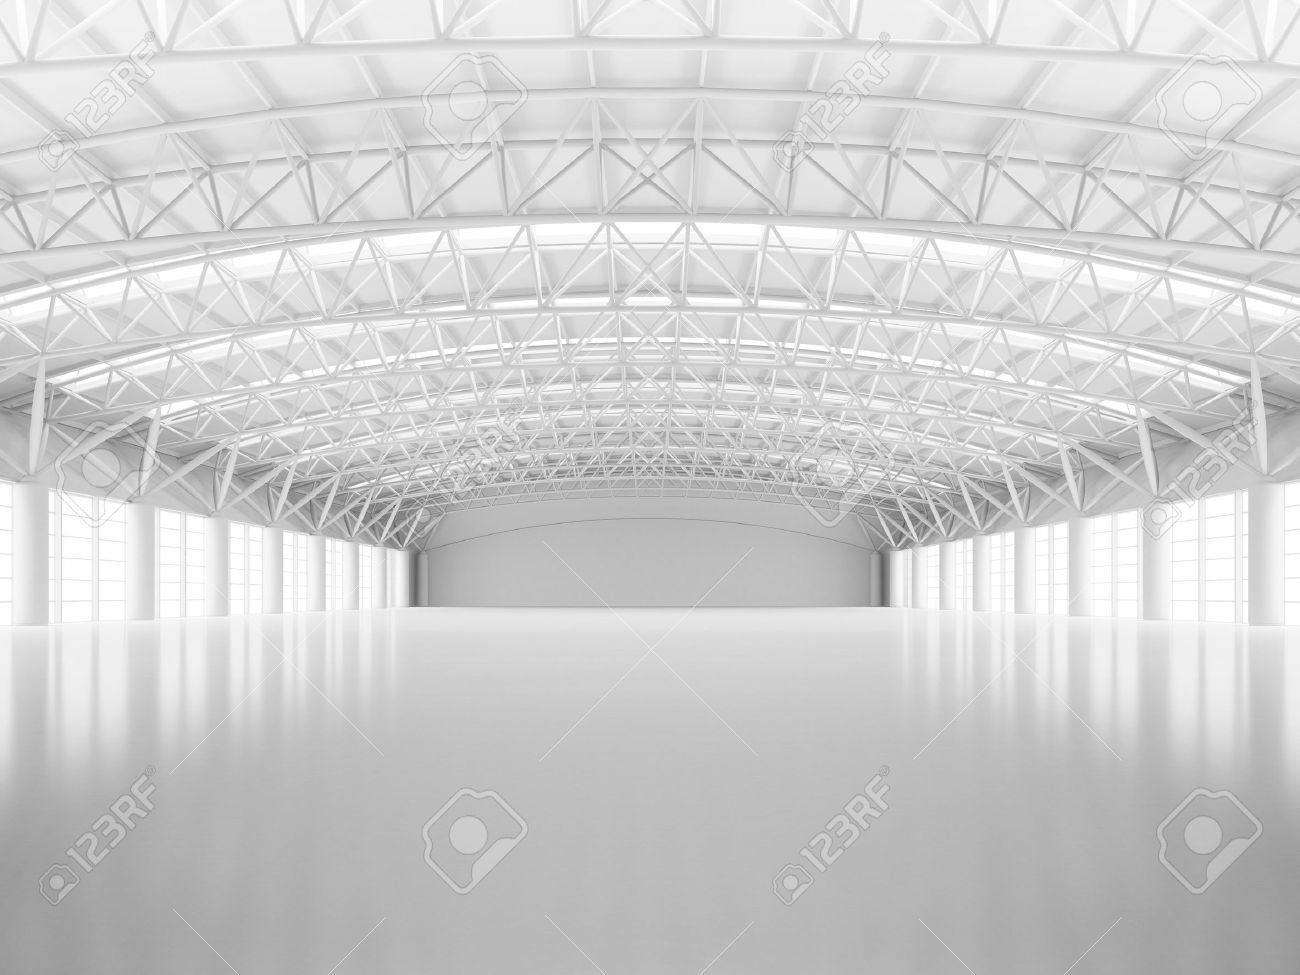 Abstract empty white warehouse interior - 49939699